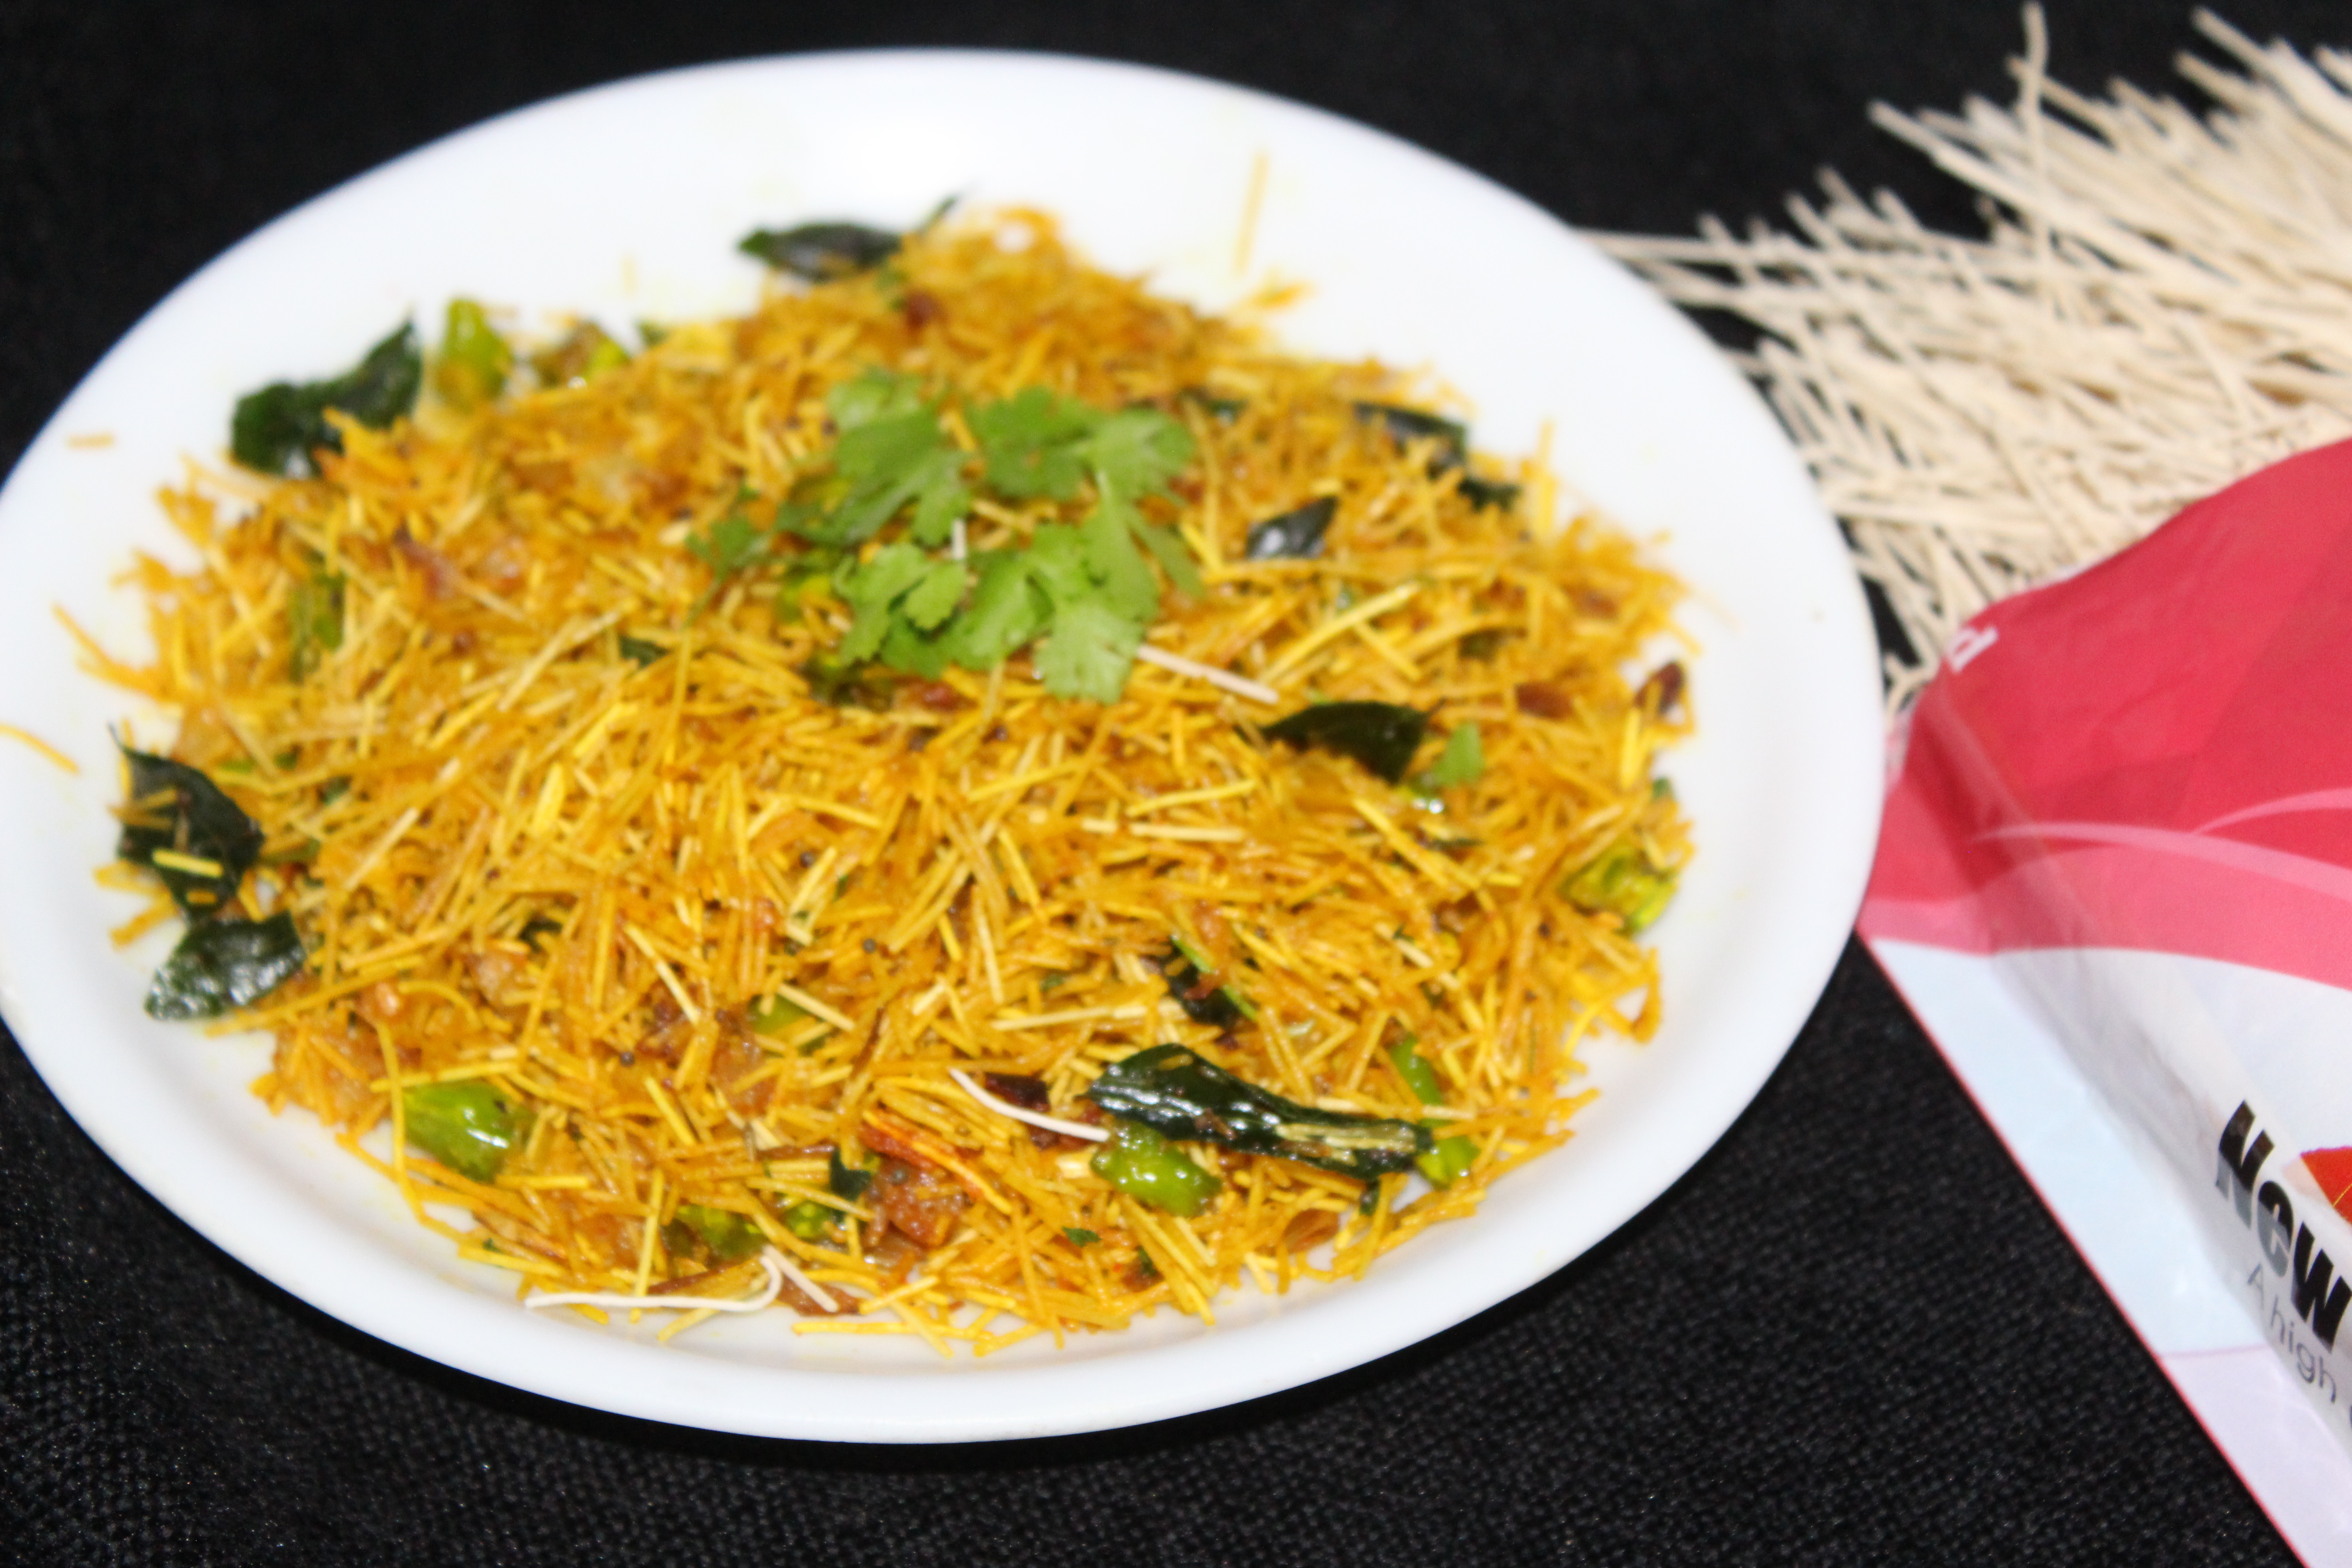 kng's vermicelli